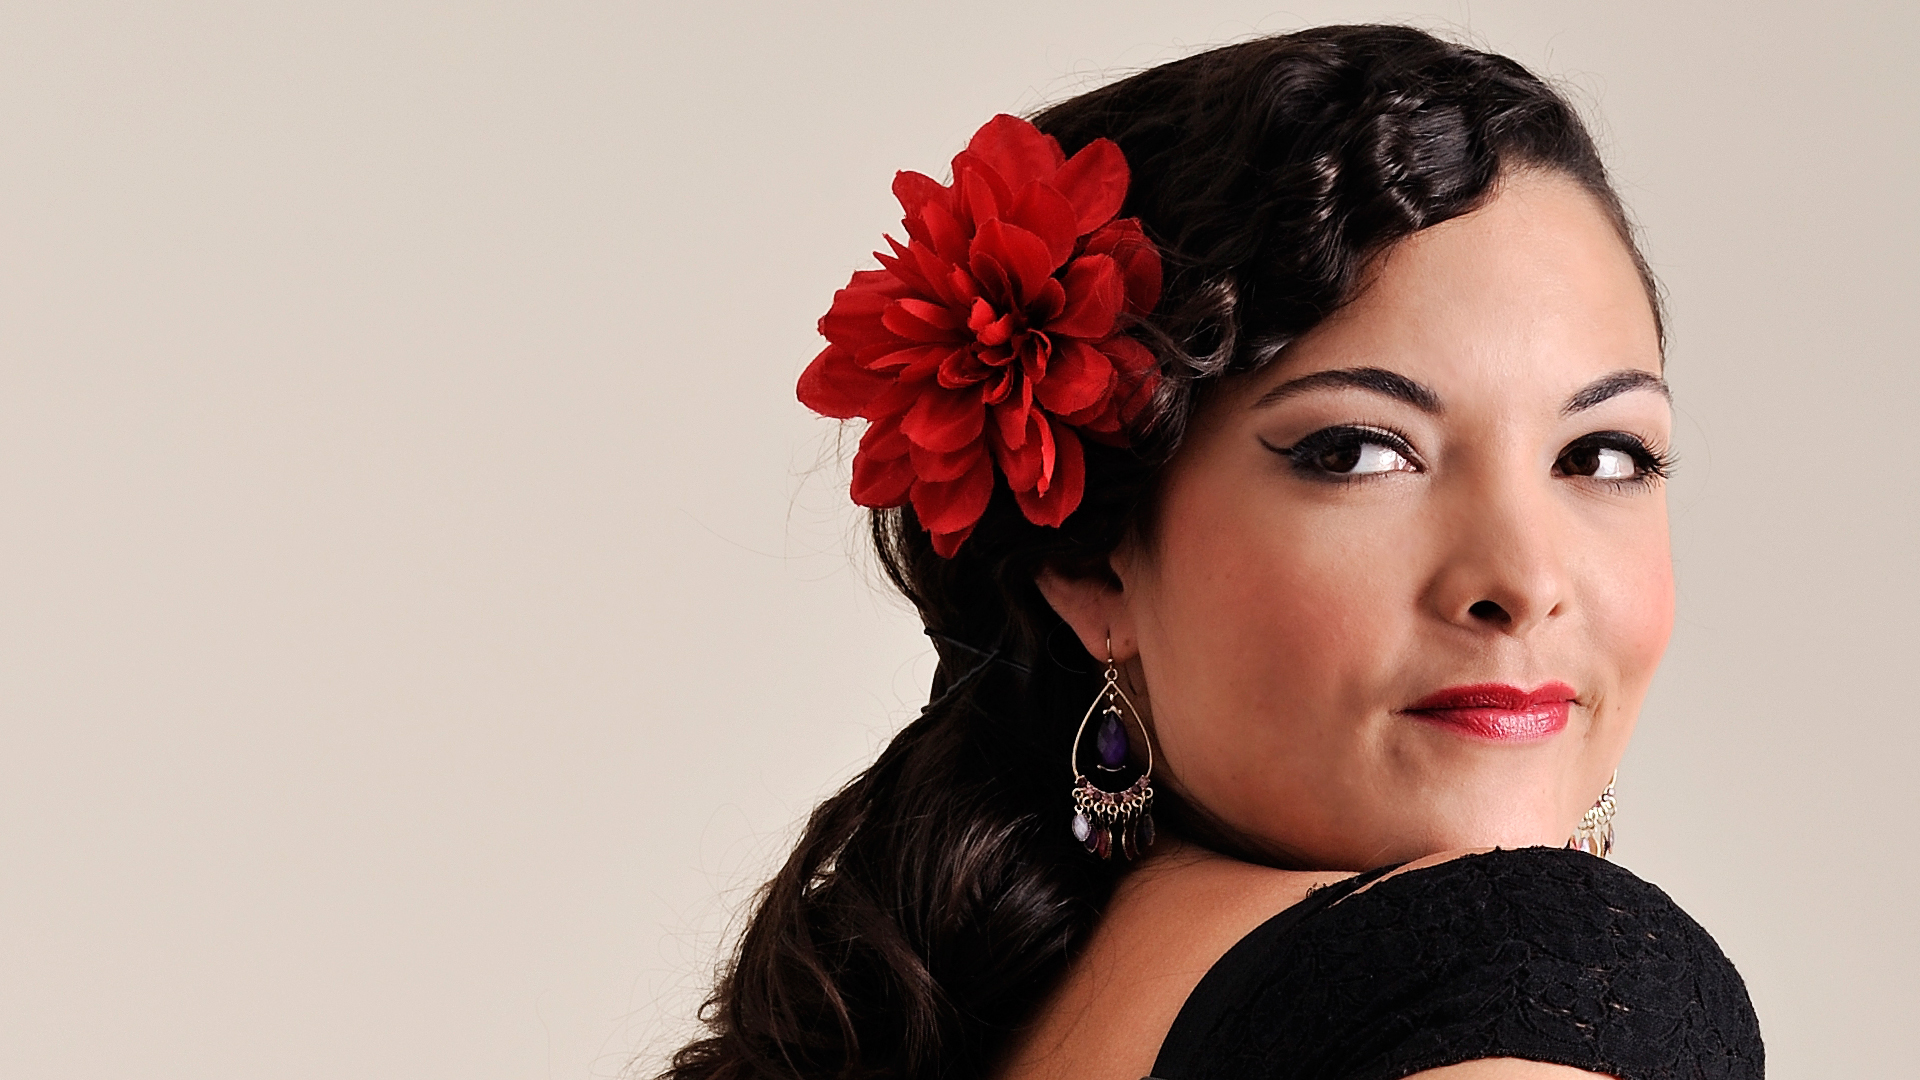 6 Caro Emerald Hd Wallpapers Backgrounds Wallpaper Abyss